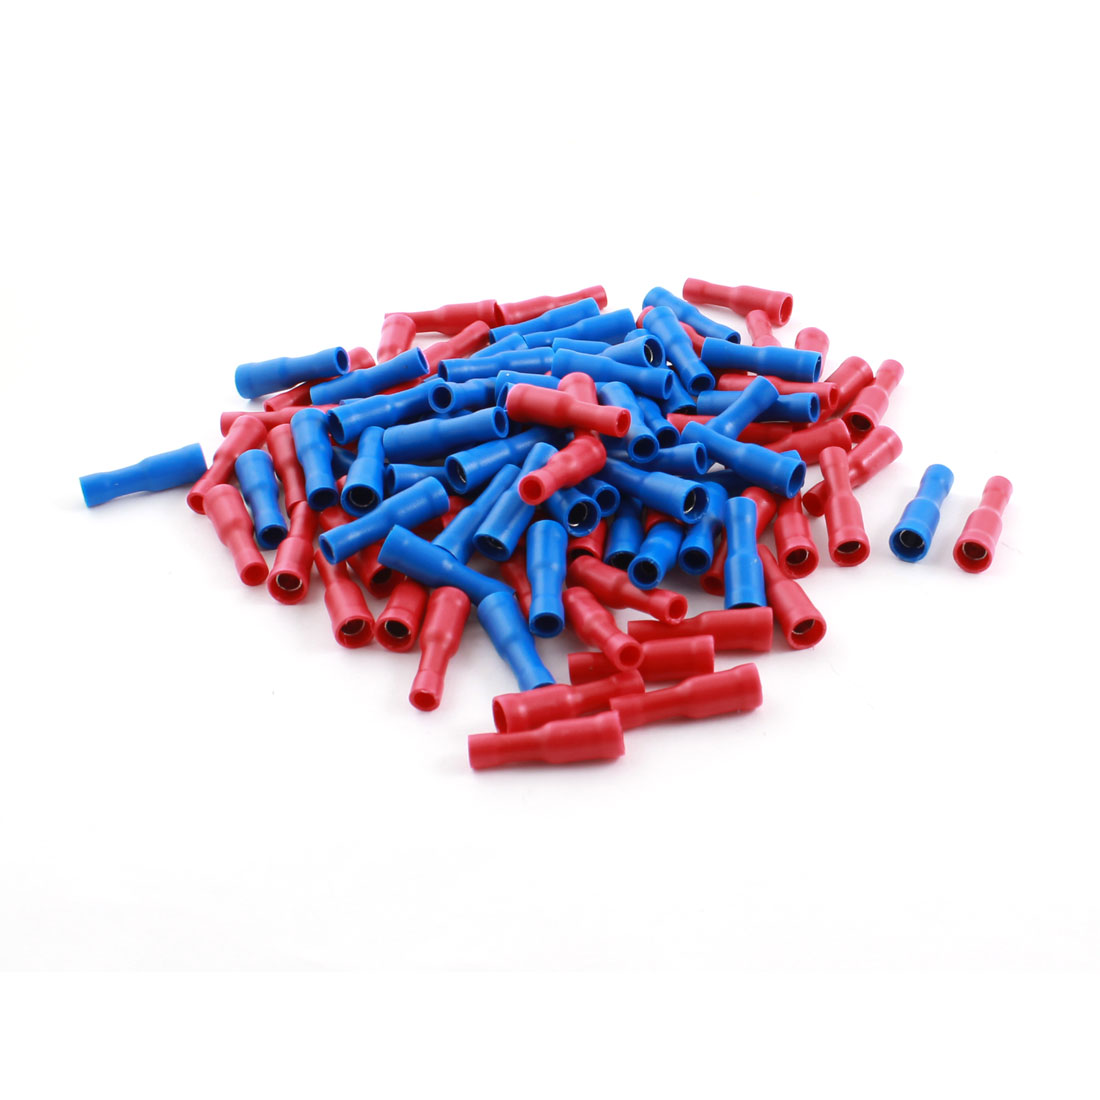 100 Pcs 16-14AWG Red Blue Fully Insulated Female Crimp Terminal Cable Connector FRD2-156